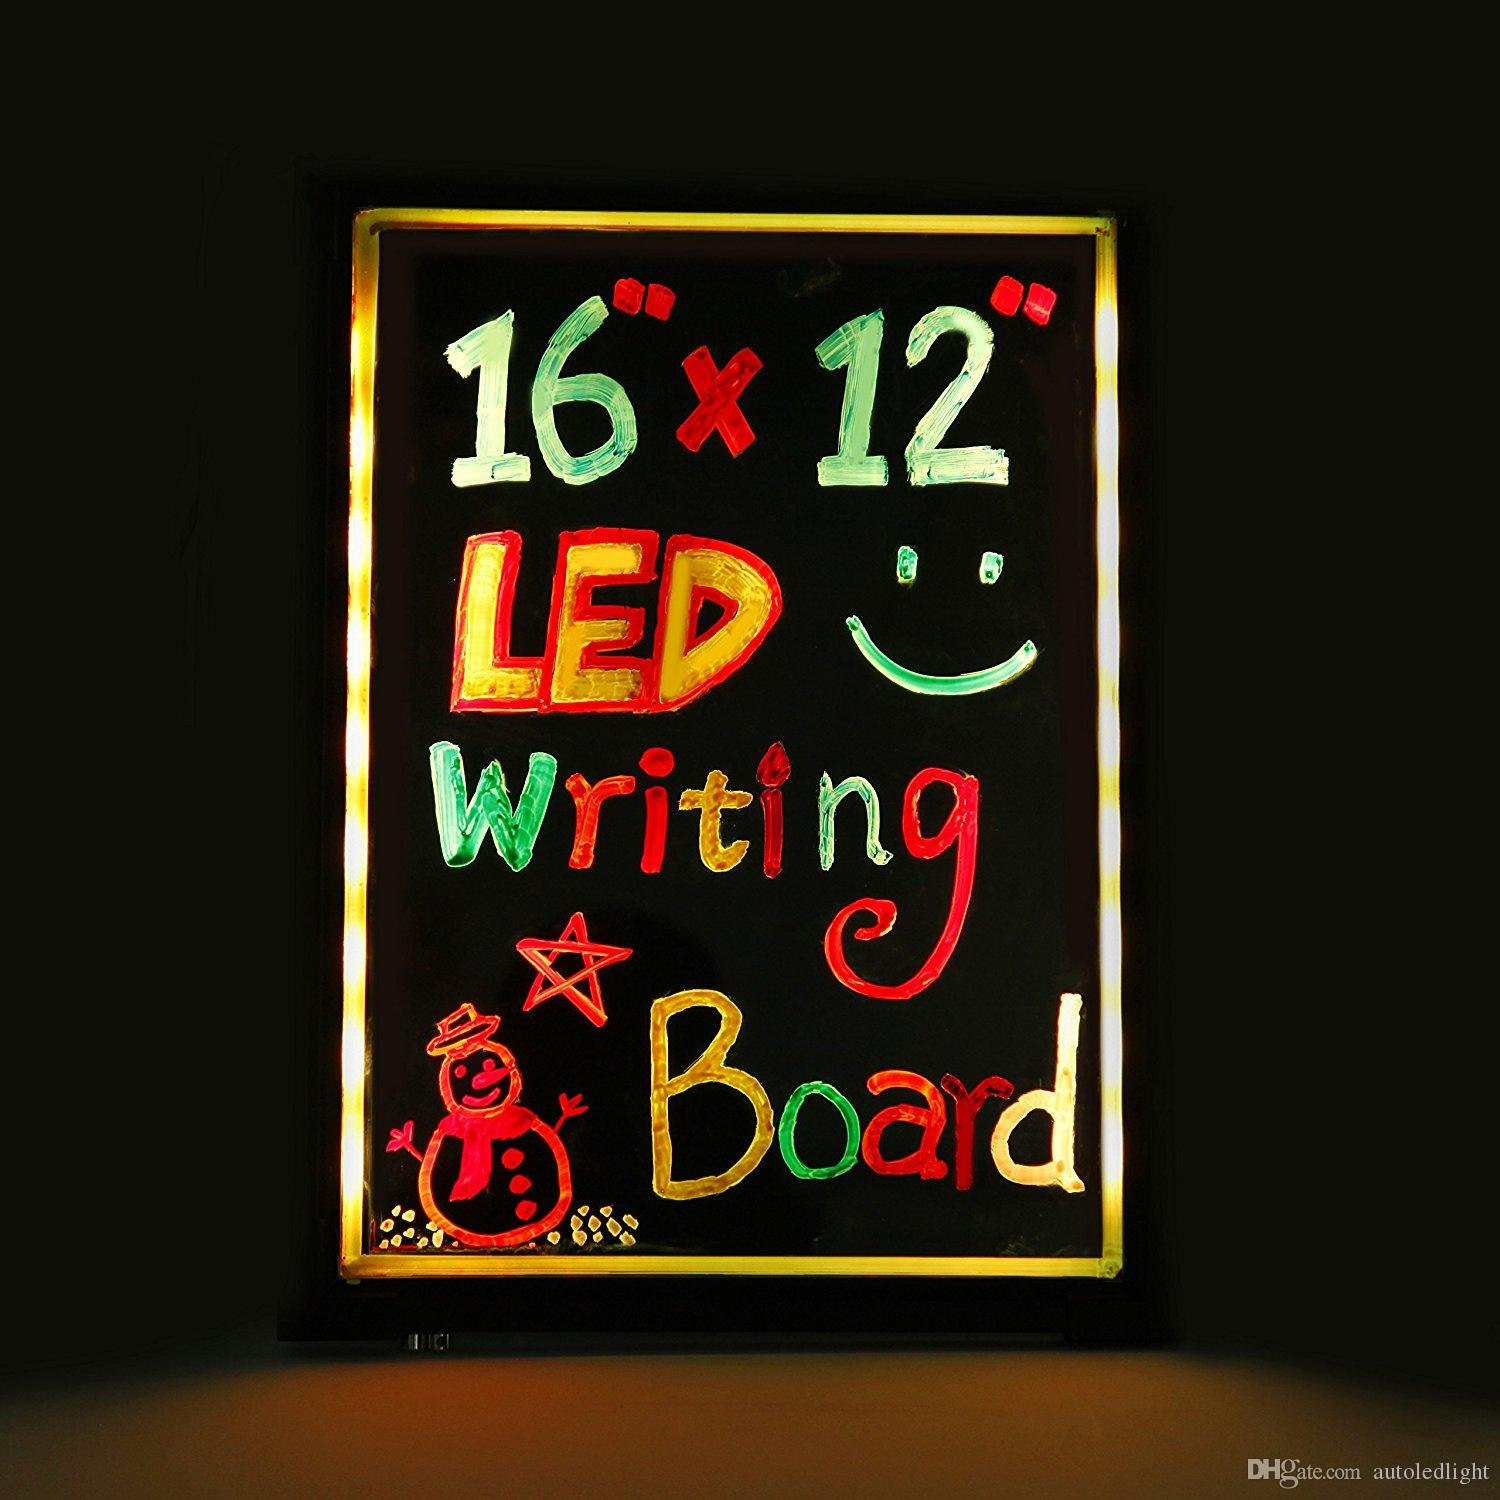 LED Writing Message Board Illuminated Erasable Neon Effect Restaurant Menu Sign with 8 colors Markers, 7 Colors Flashing DIY